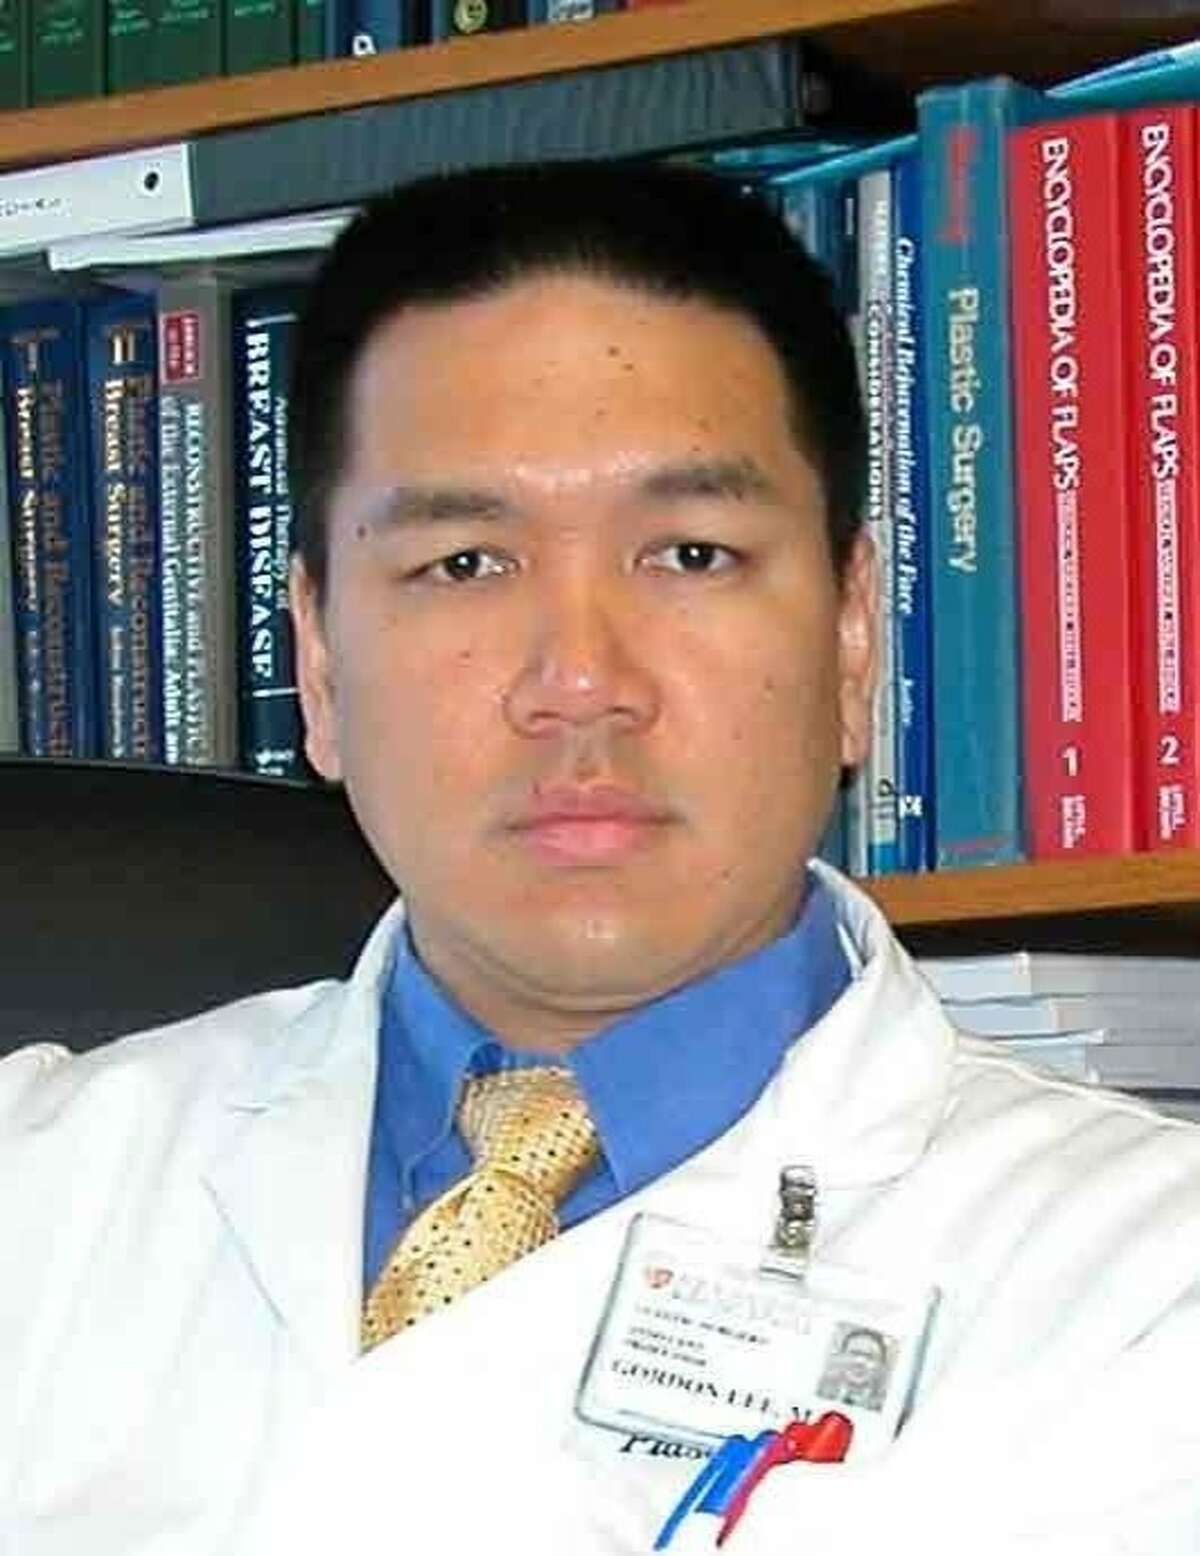 Dr. Gordon Lee performed penile reconstruction surgery on Mike Moore, 30, almost seven years ago. Because of the surgery, Moore was able to conceive his son, Memphis, in what is believed to be the first natural conception with a reconstructed penis in the history of the procedure.